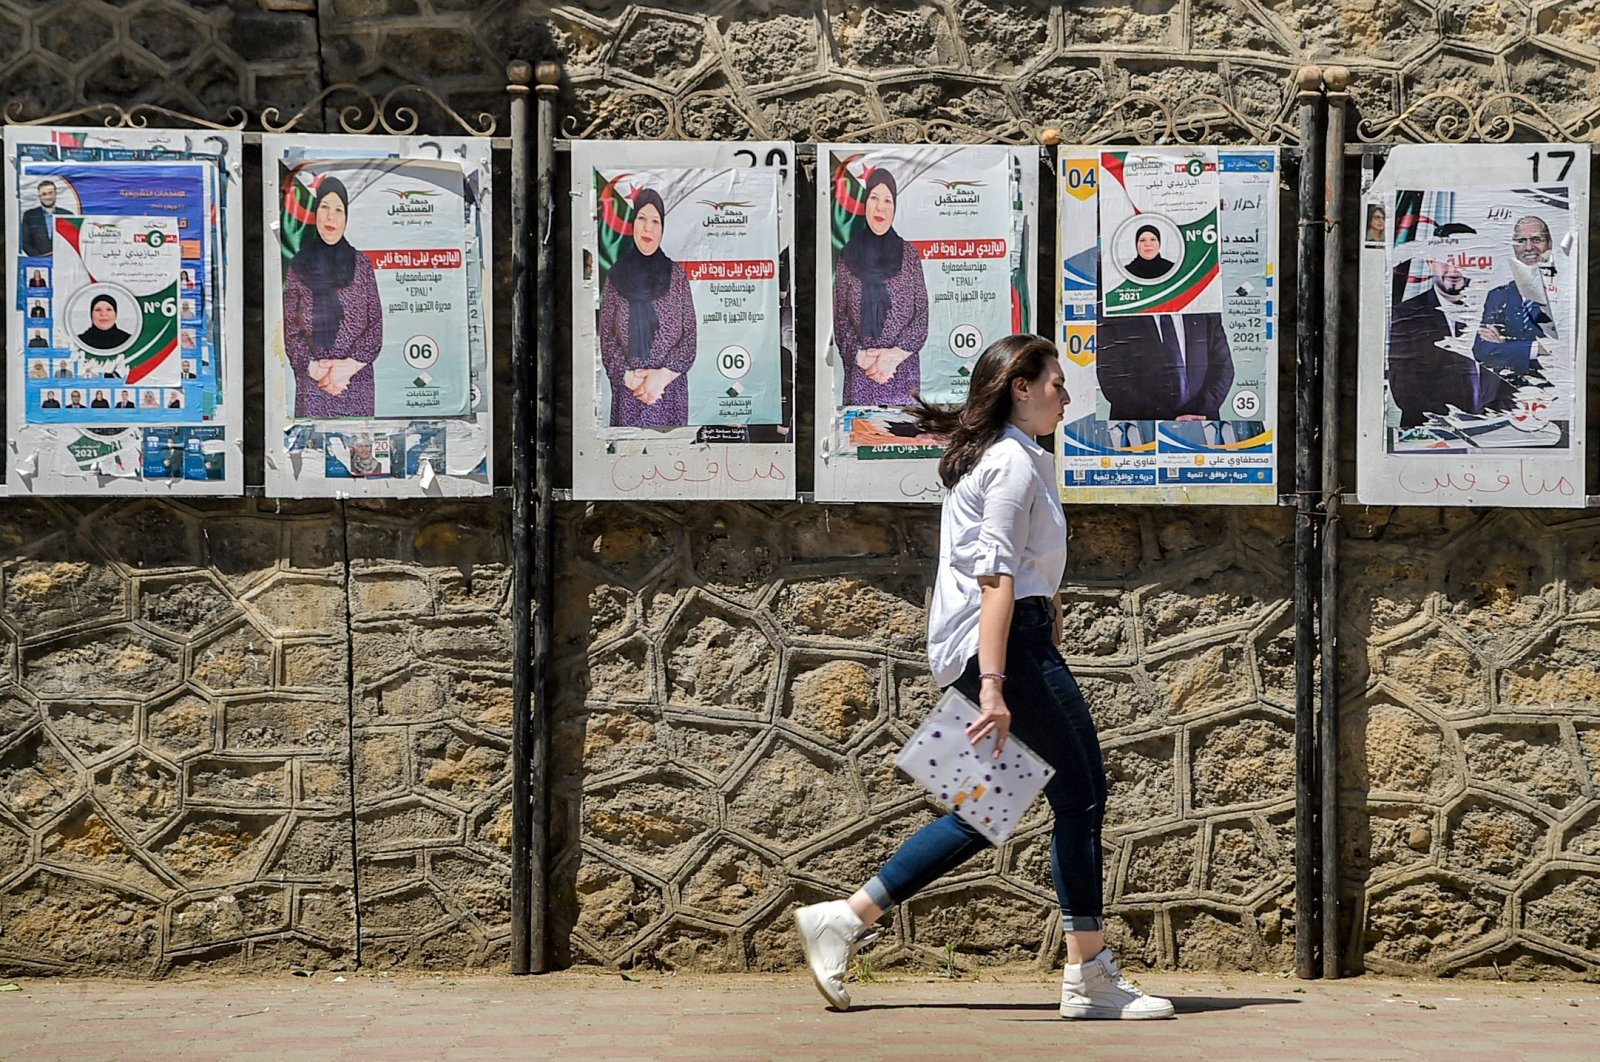 """A woman walks past a fence showing electoral posters of a candidate of the """"Future Front"""" political party in the Algerian capital, Algiers, June 11, 2021. (AFP Photo)"""